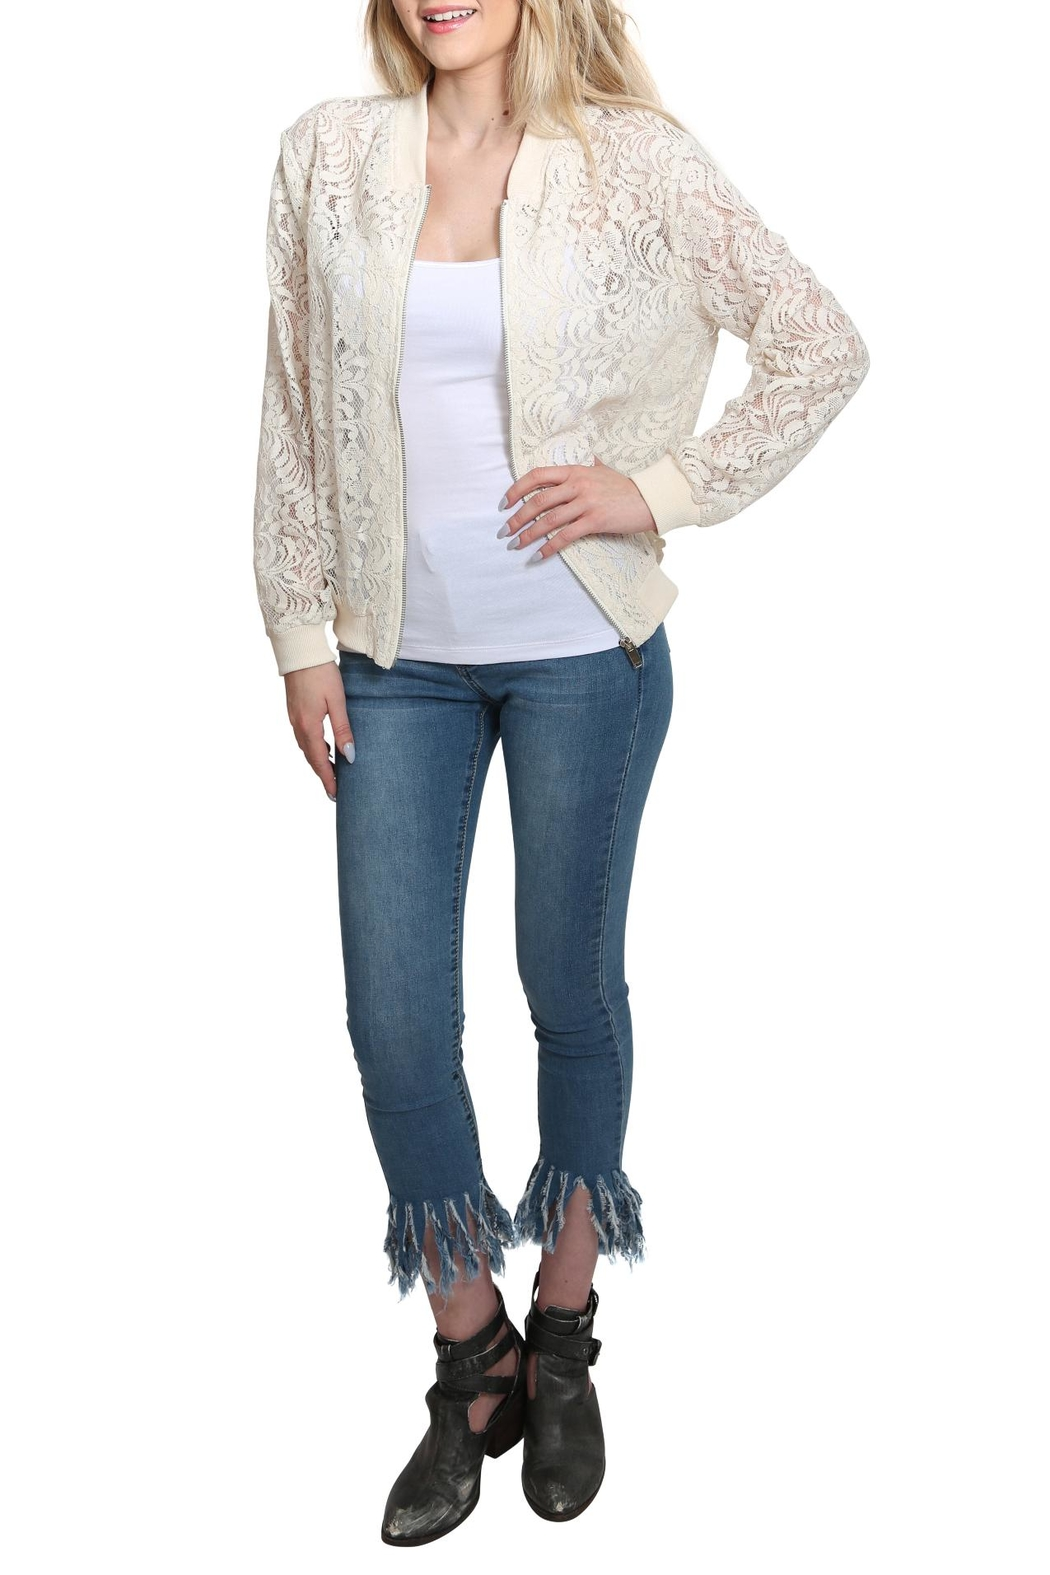 Umgee USA Zip Up Lace Bomber Jacket - Front Cropped Image